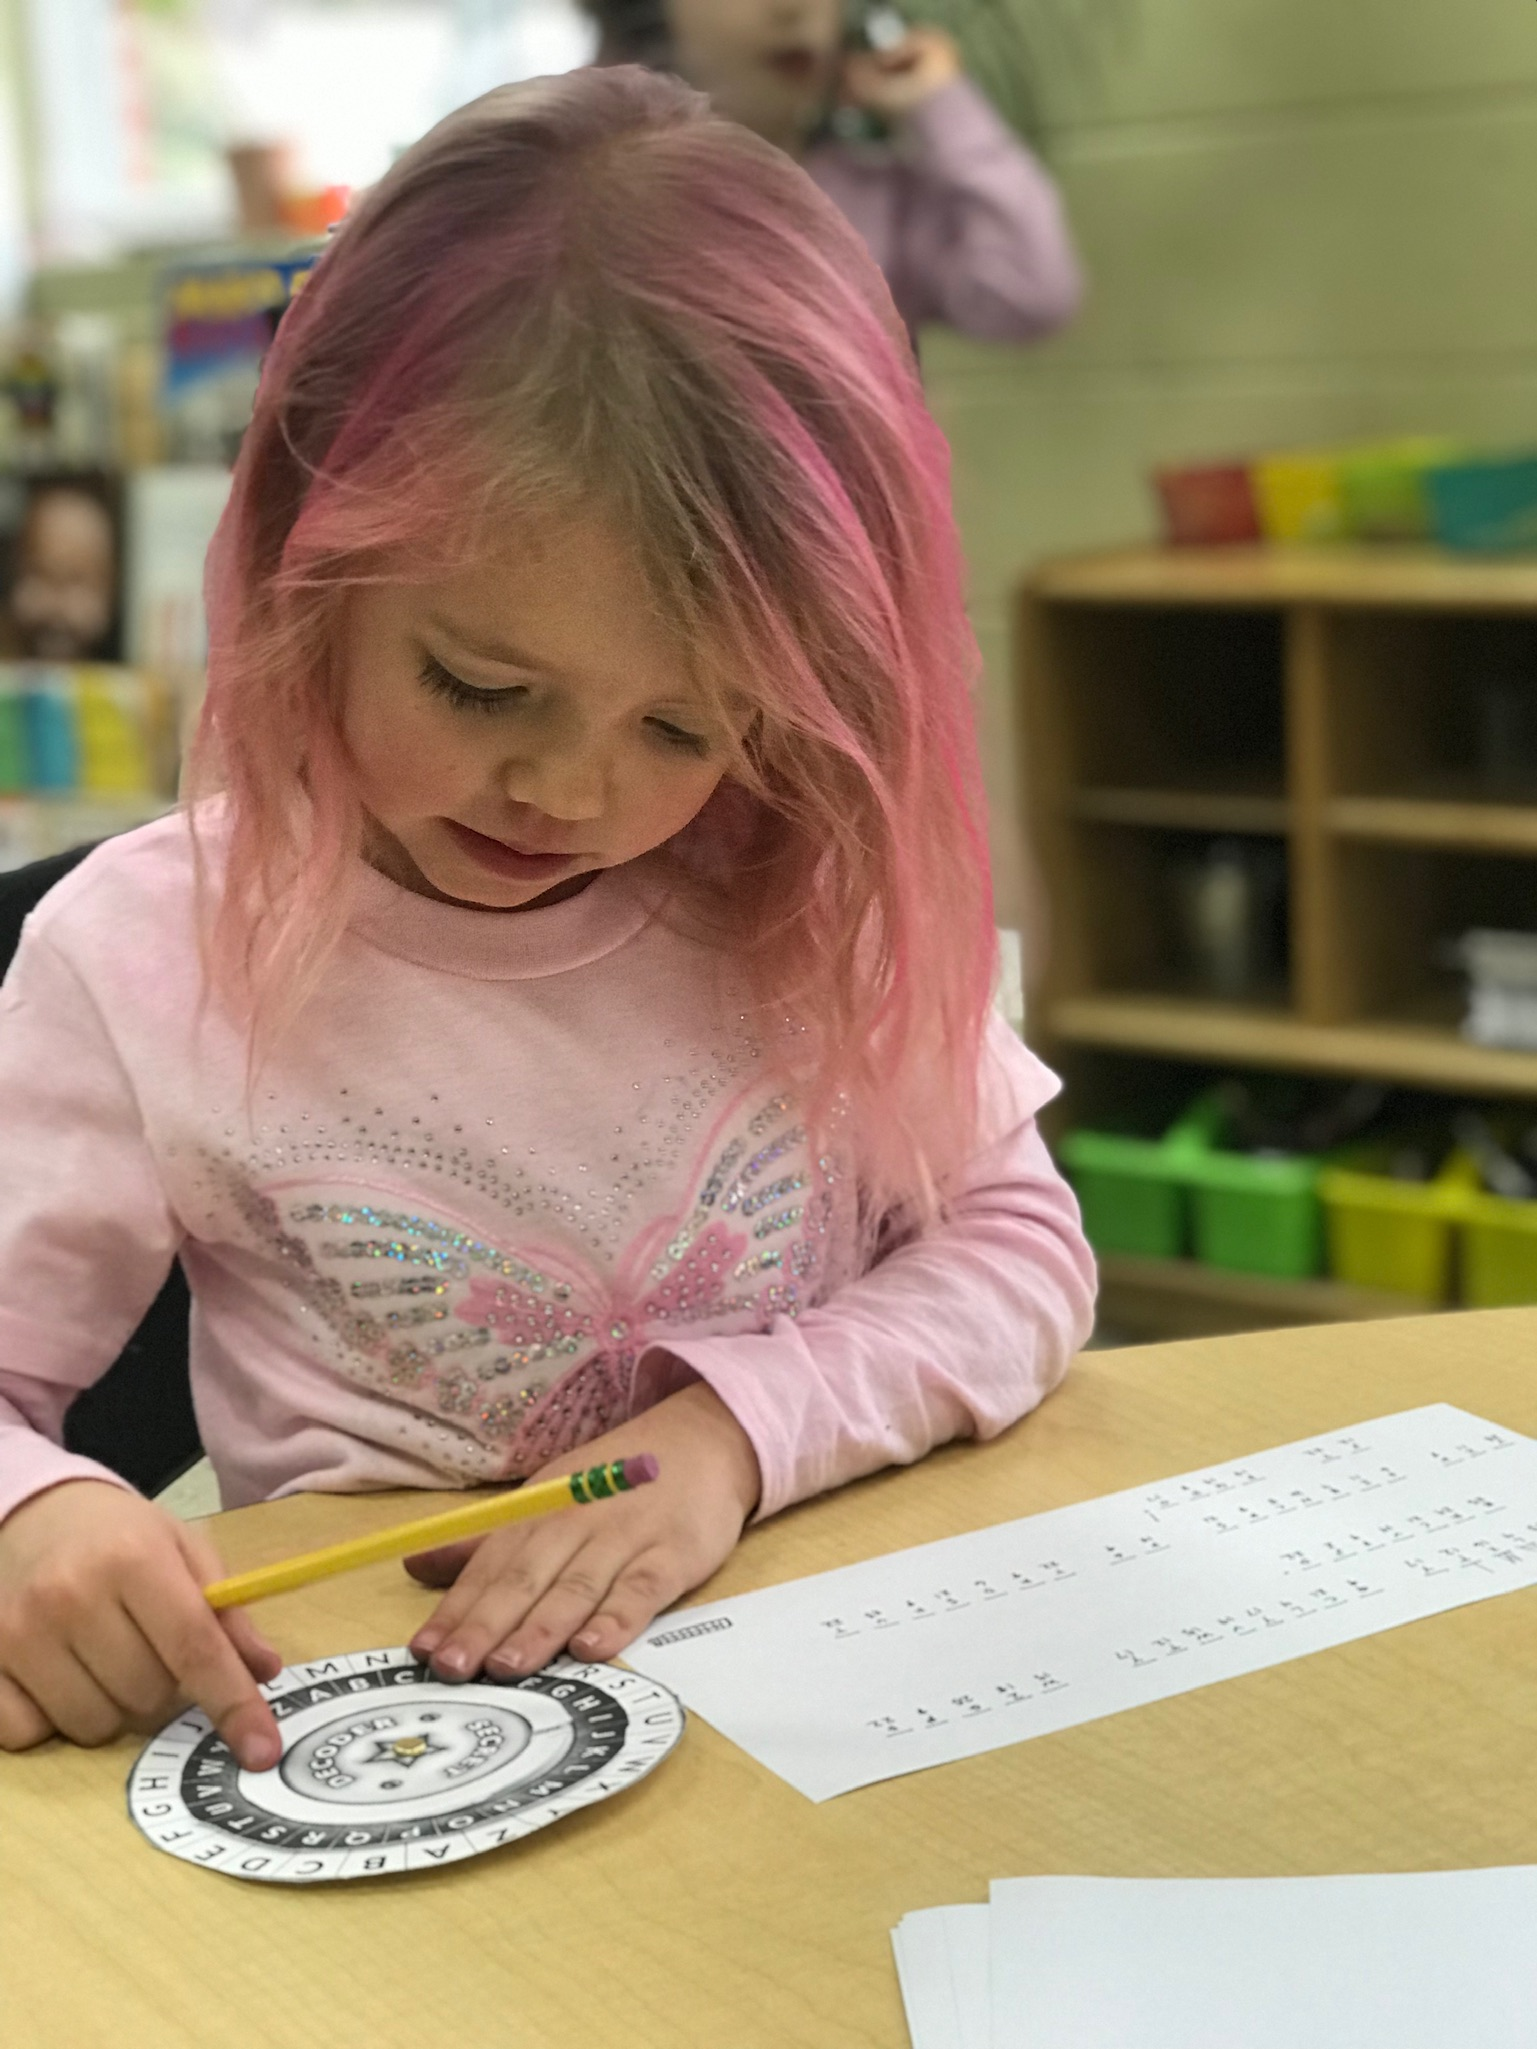 A simple cypher wheel that operates by rotating concentric circles is perfect for a kindergartener.